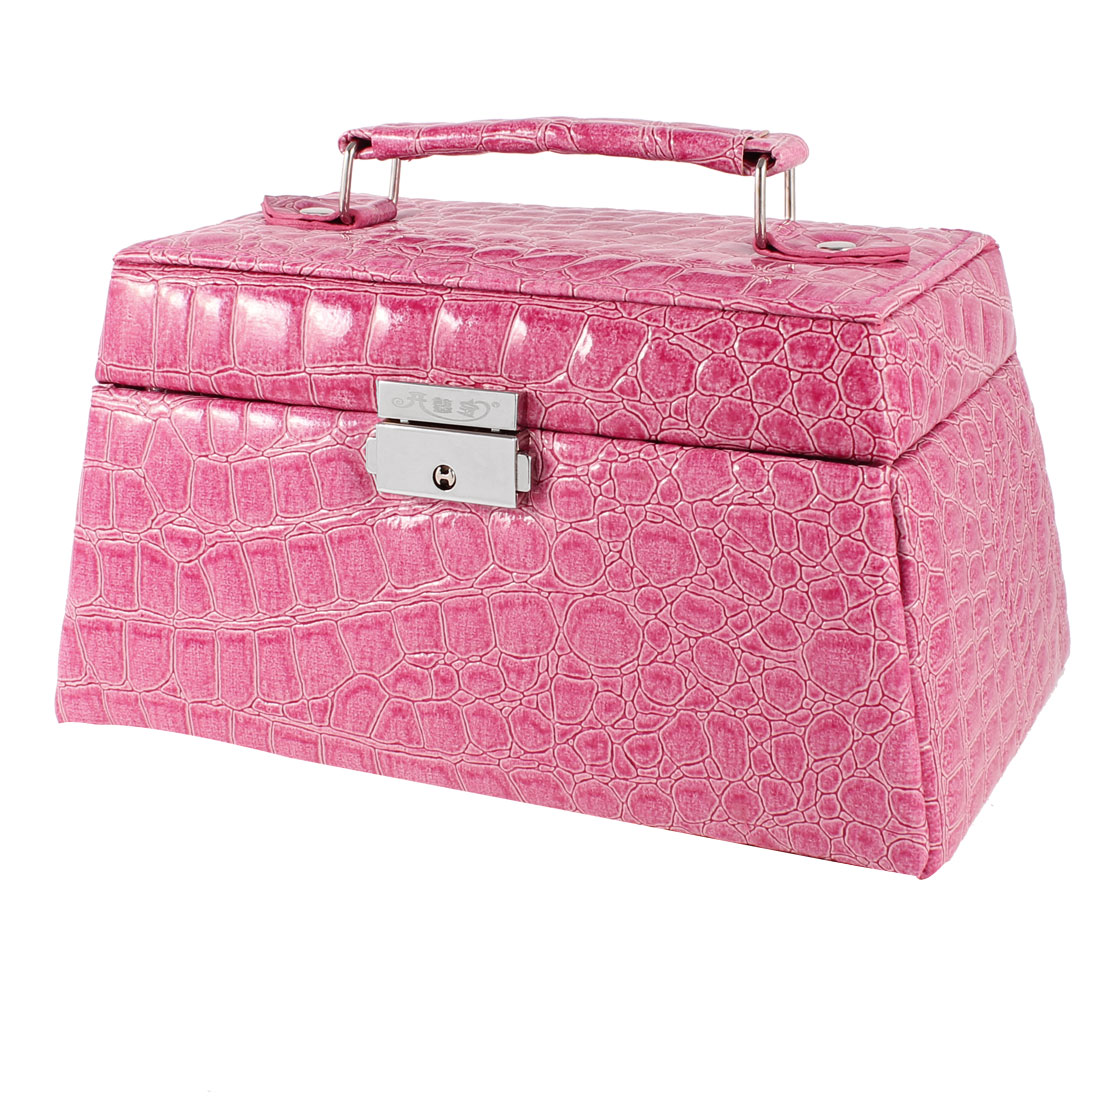 Alligator Print Fuchsia Faux Leather 3 Layers Jewelry Box Case w Mirror